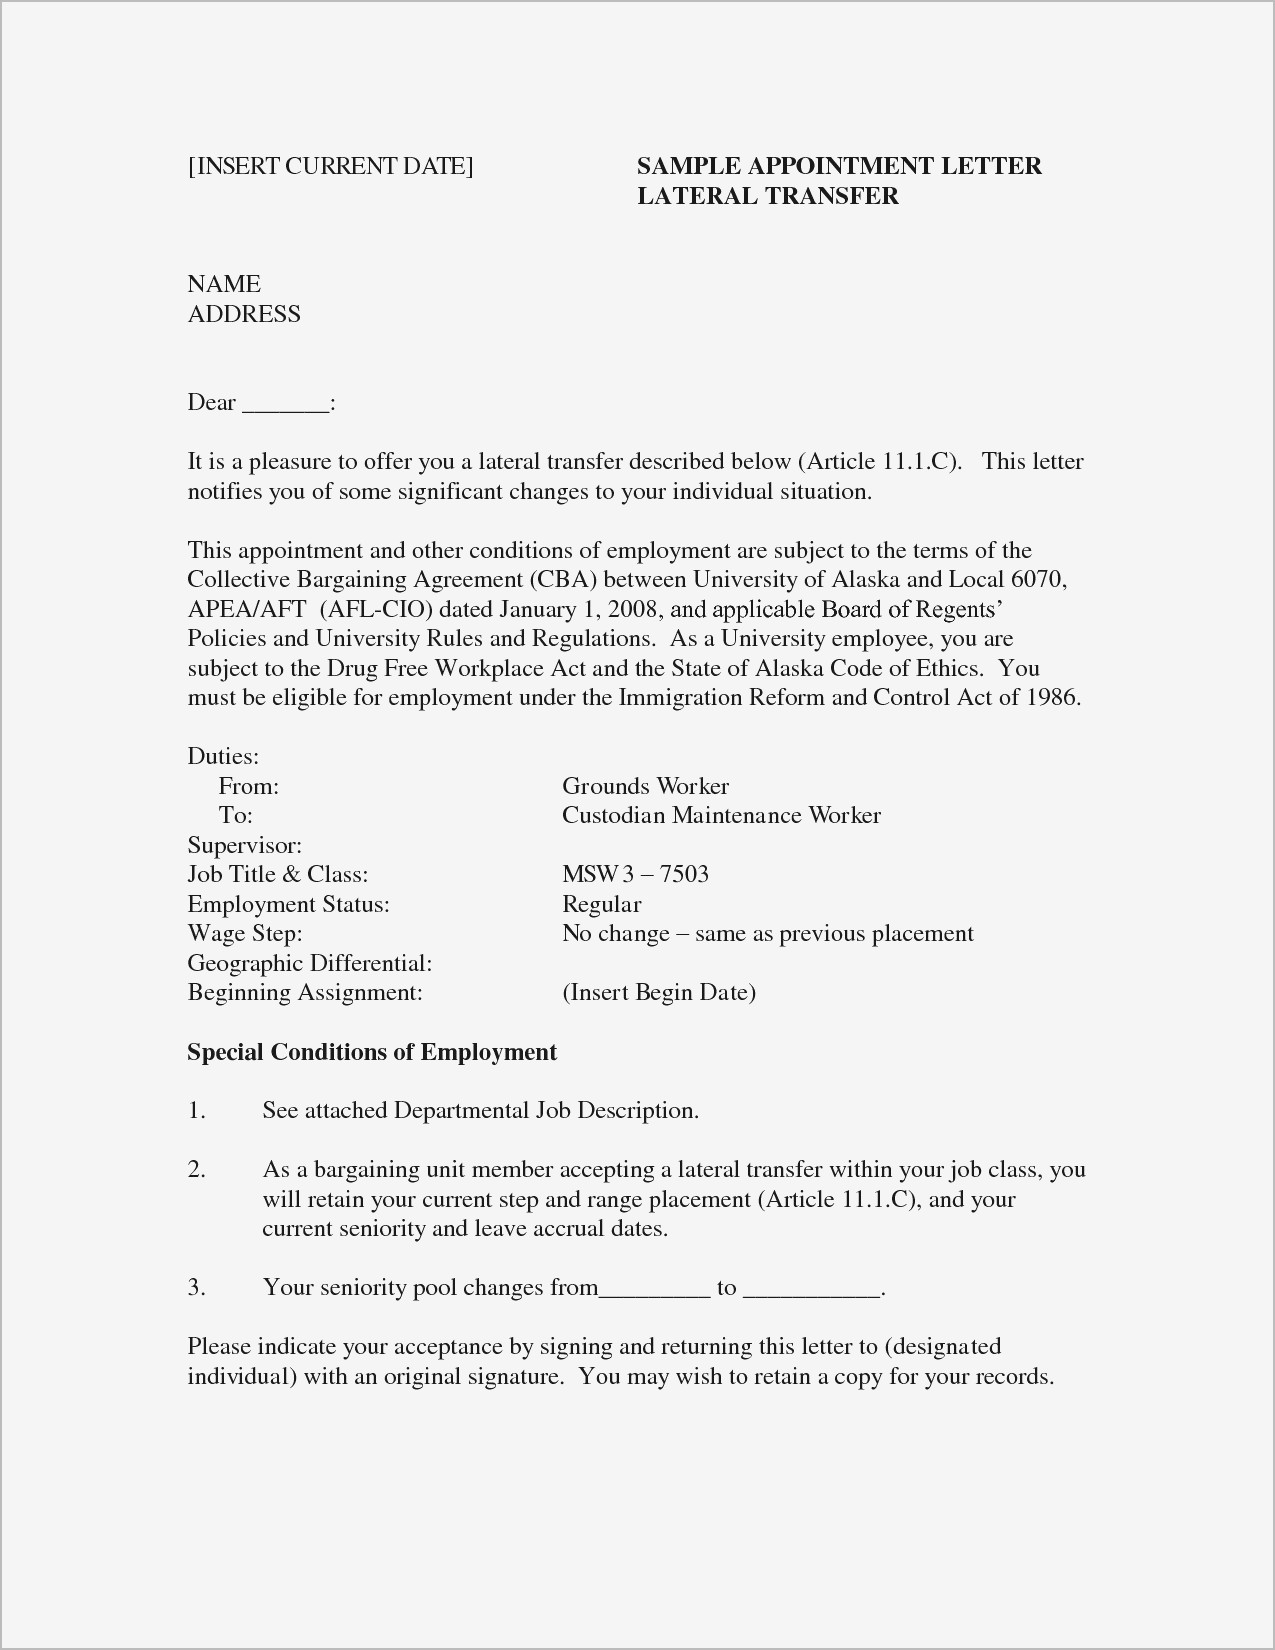 Letter Of Engagement Template for Hiring New Employees - Job Fer Letter Template Us Copy Od Consultant Cover Letter Fungram